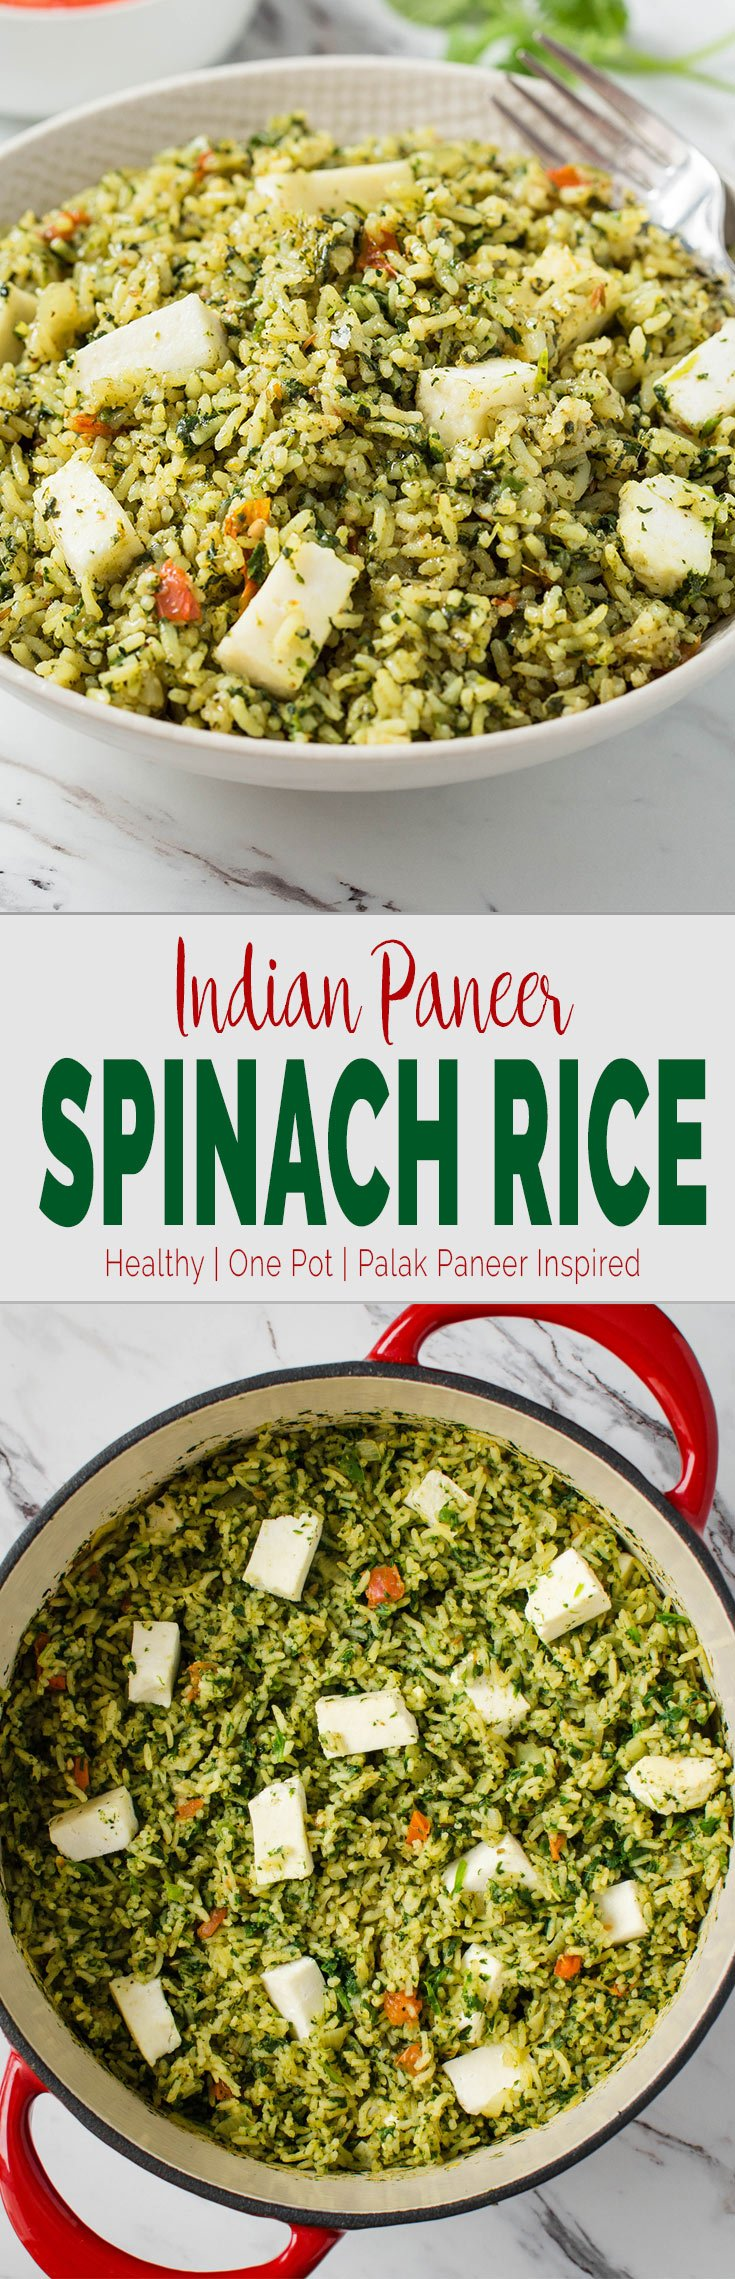 Turn authentic Indian palak paneer curry into a complete meal with this delicious one pot Easy Palak Paneer Rice recipe. #spinach #palakpaneer #healthyrecipes